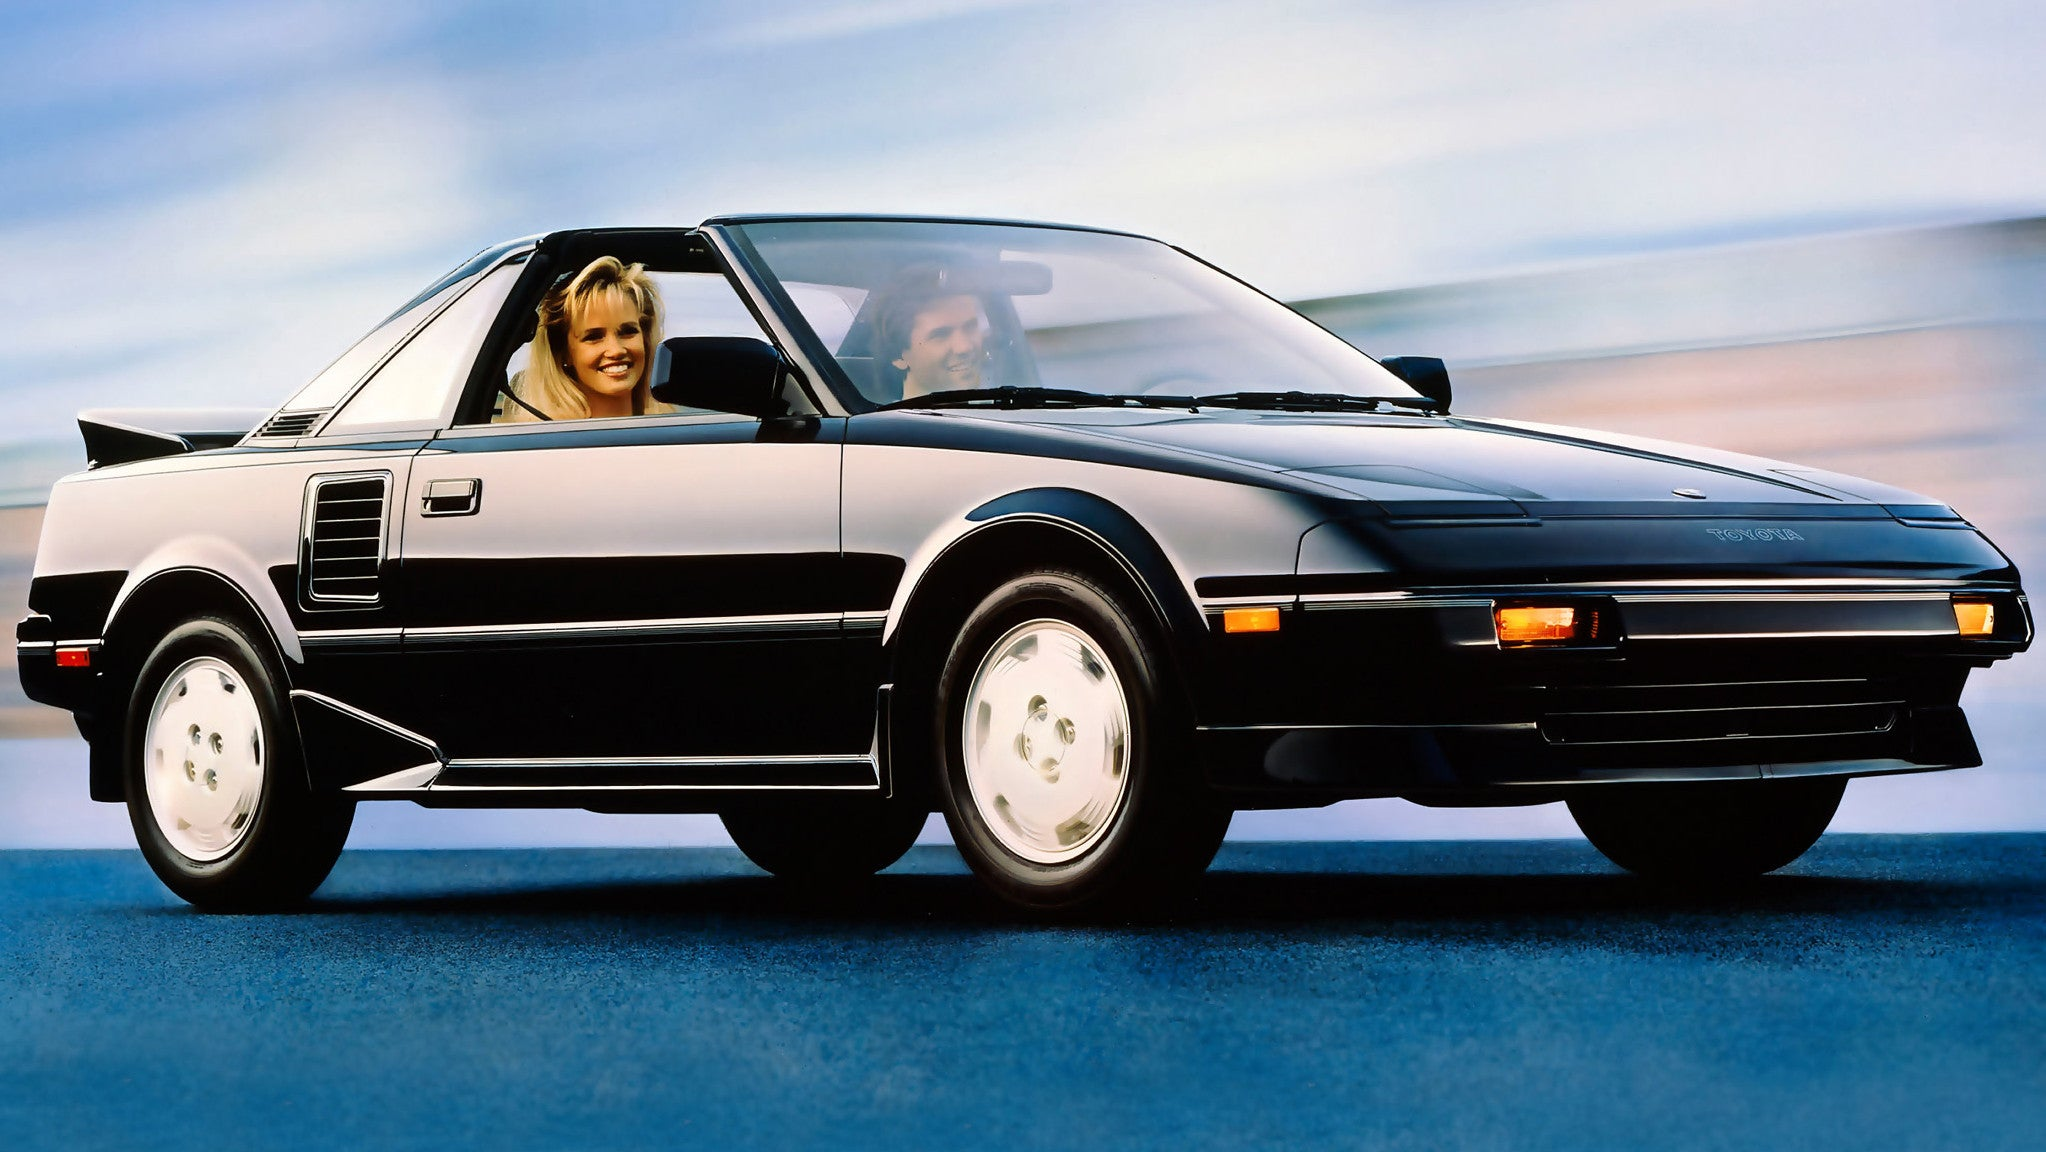 Toyota Still Doesn't Have The Guts To Bring Back The MR2